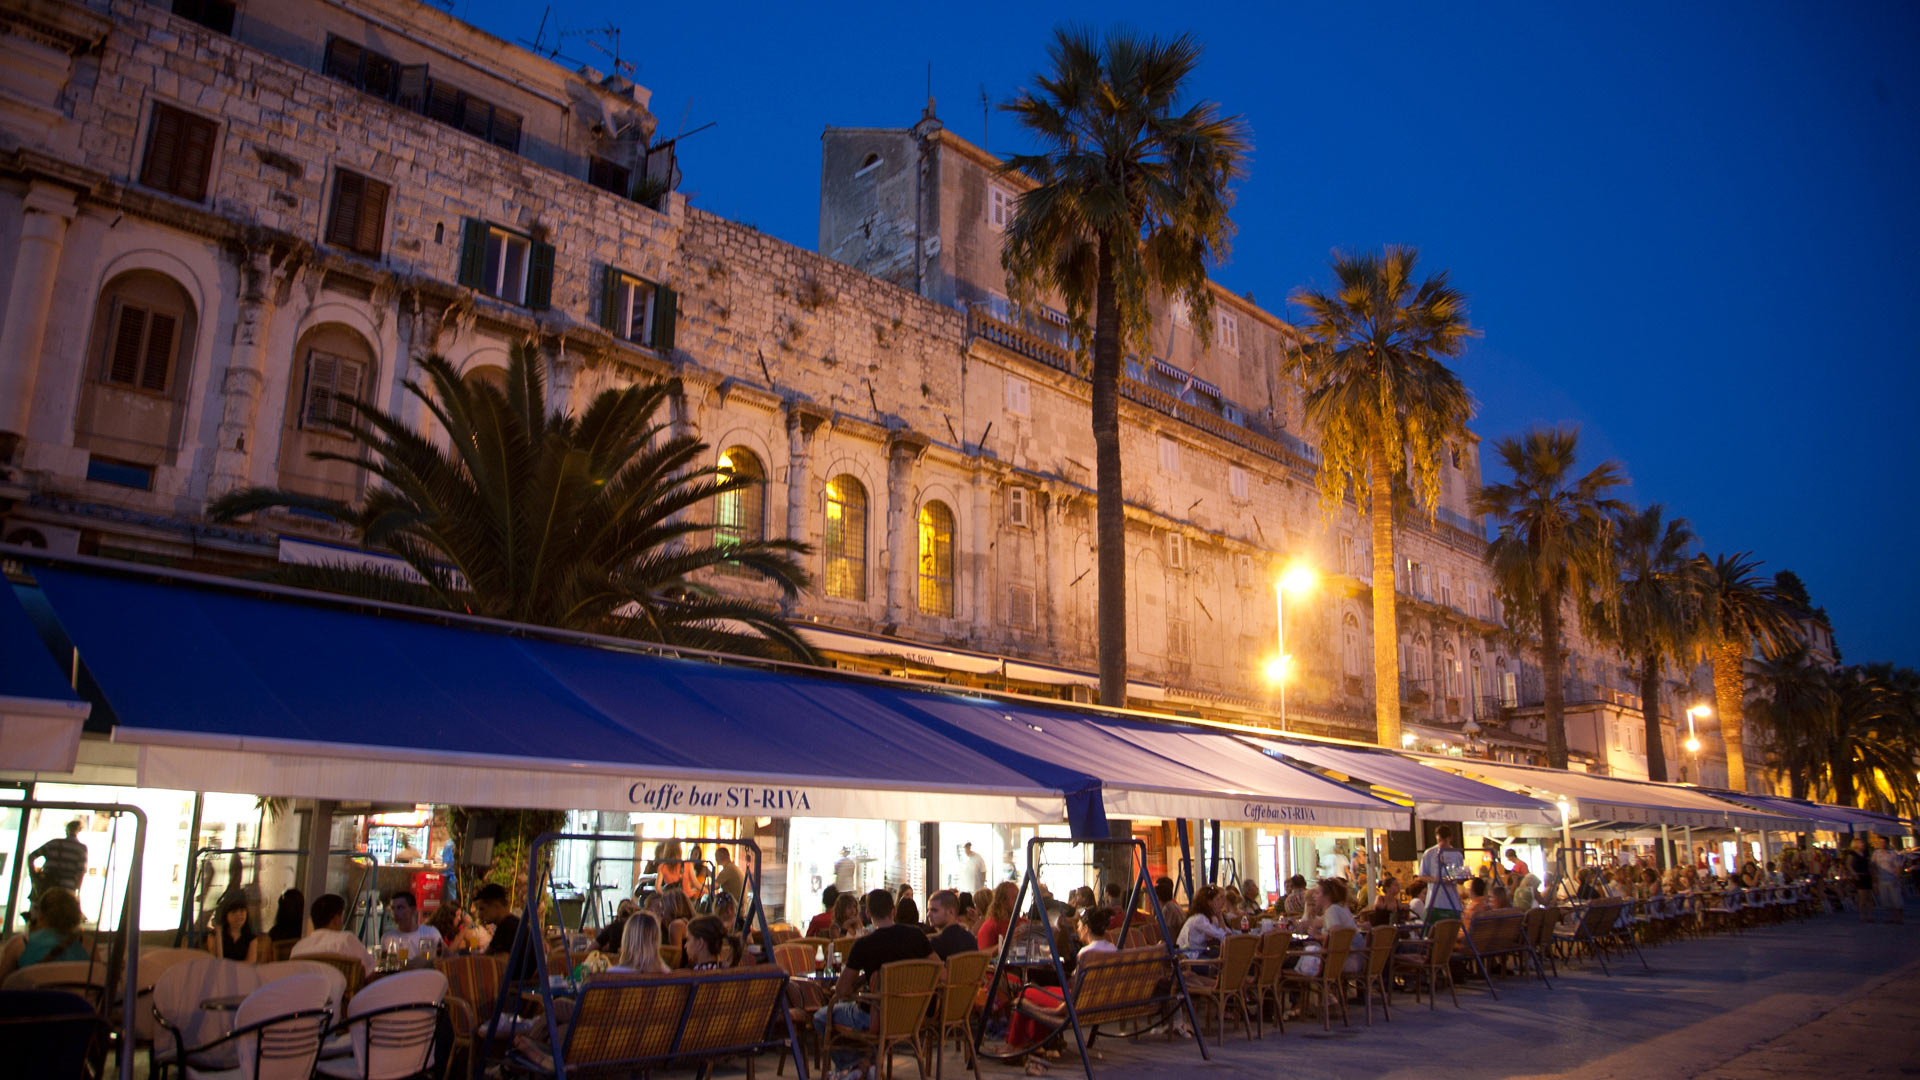 Outdoor cafés along the Riva, Split, Split-Dalmatia, Croatia